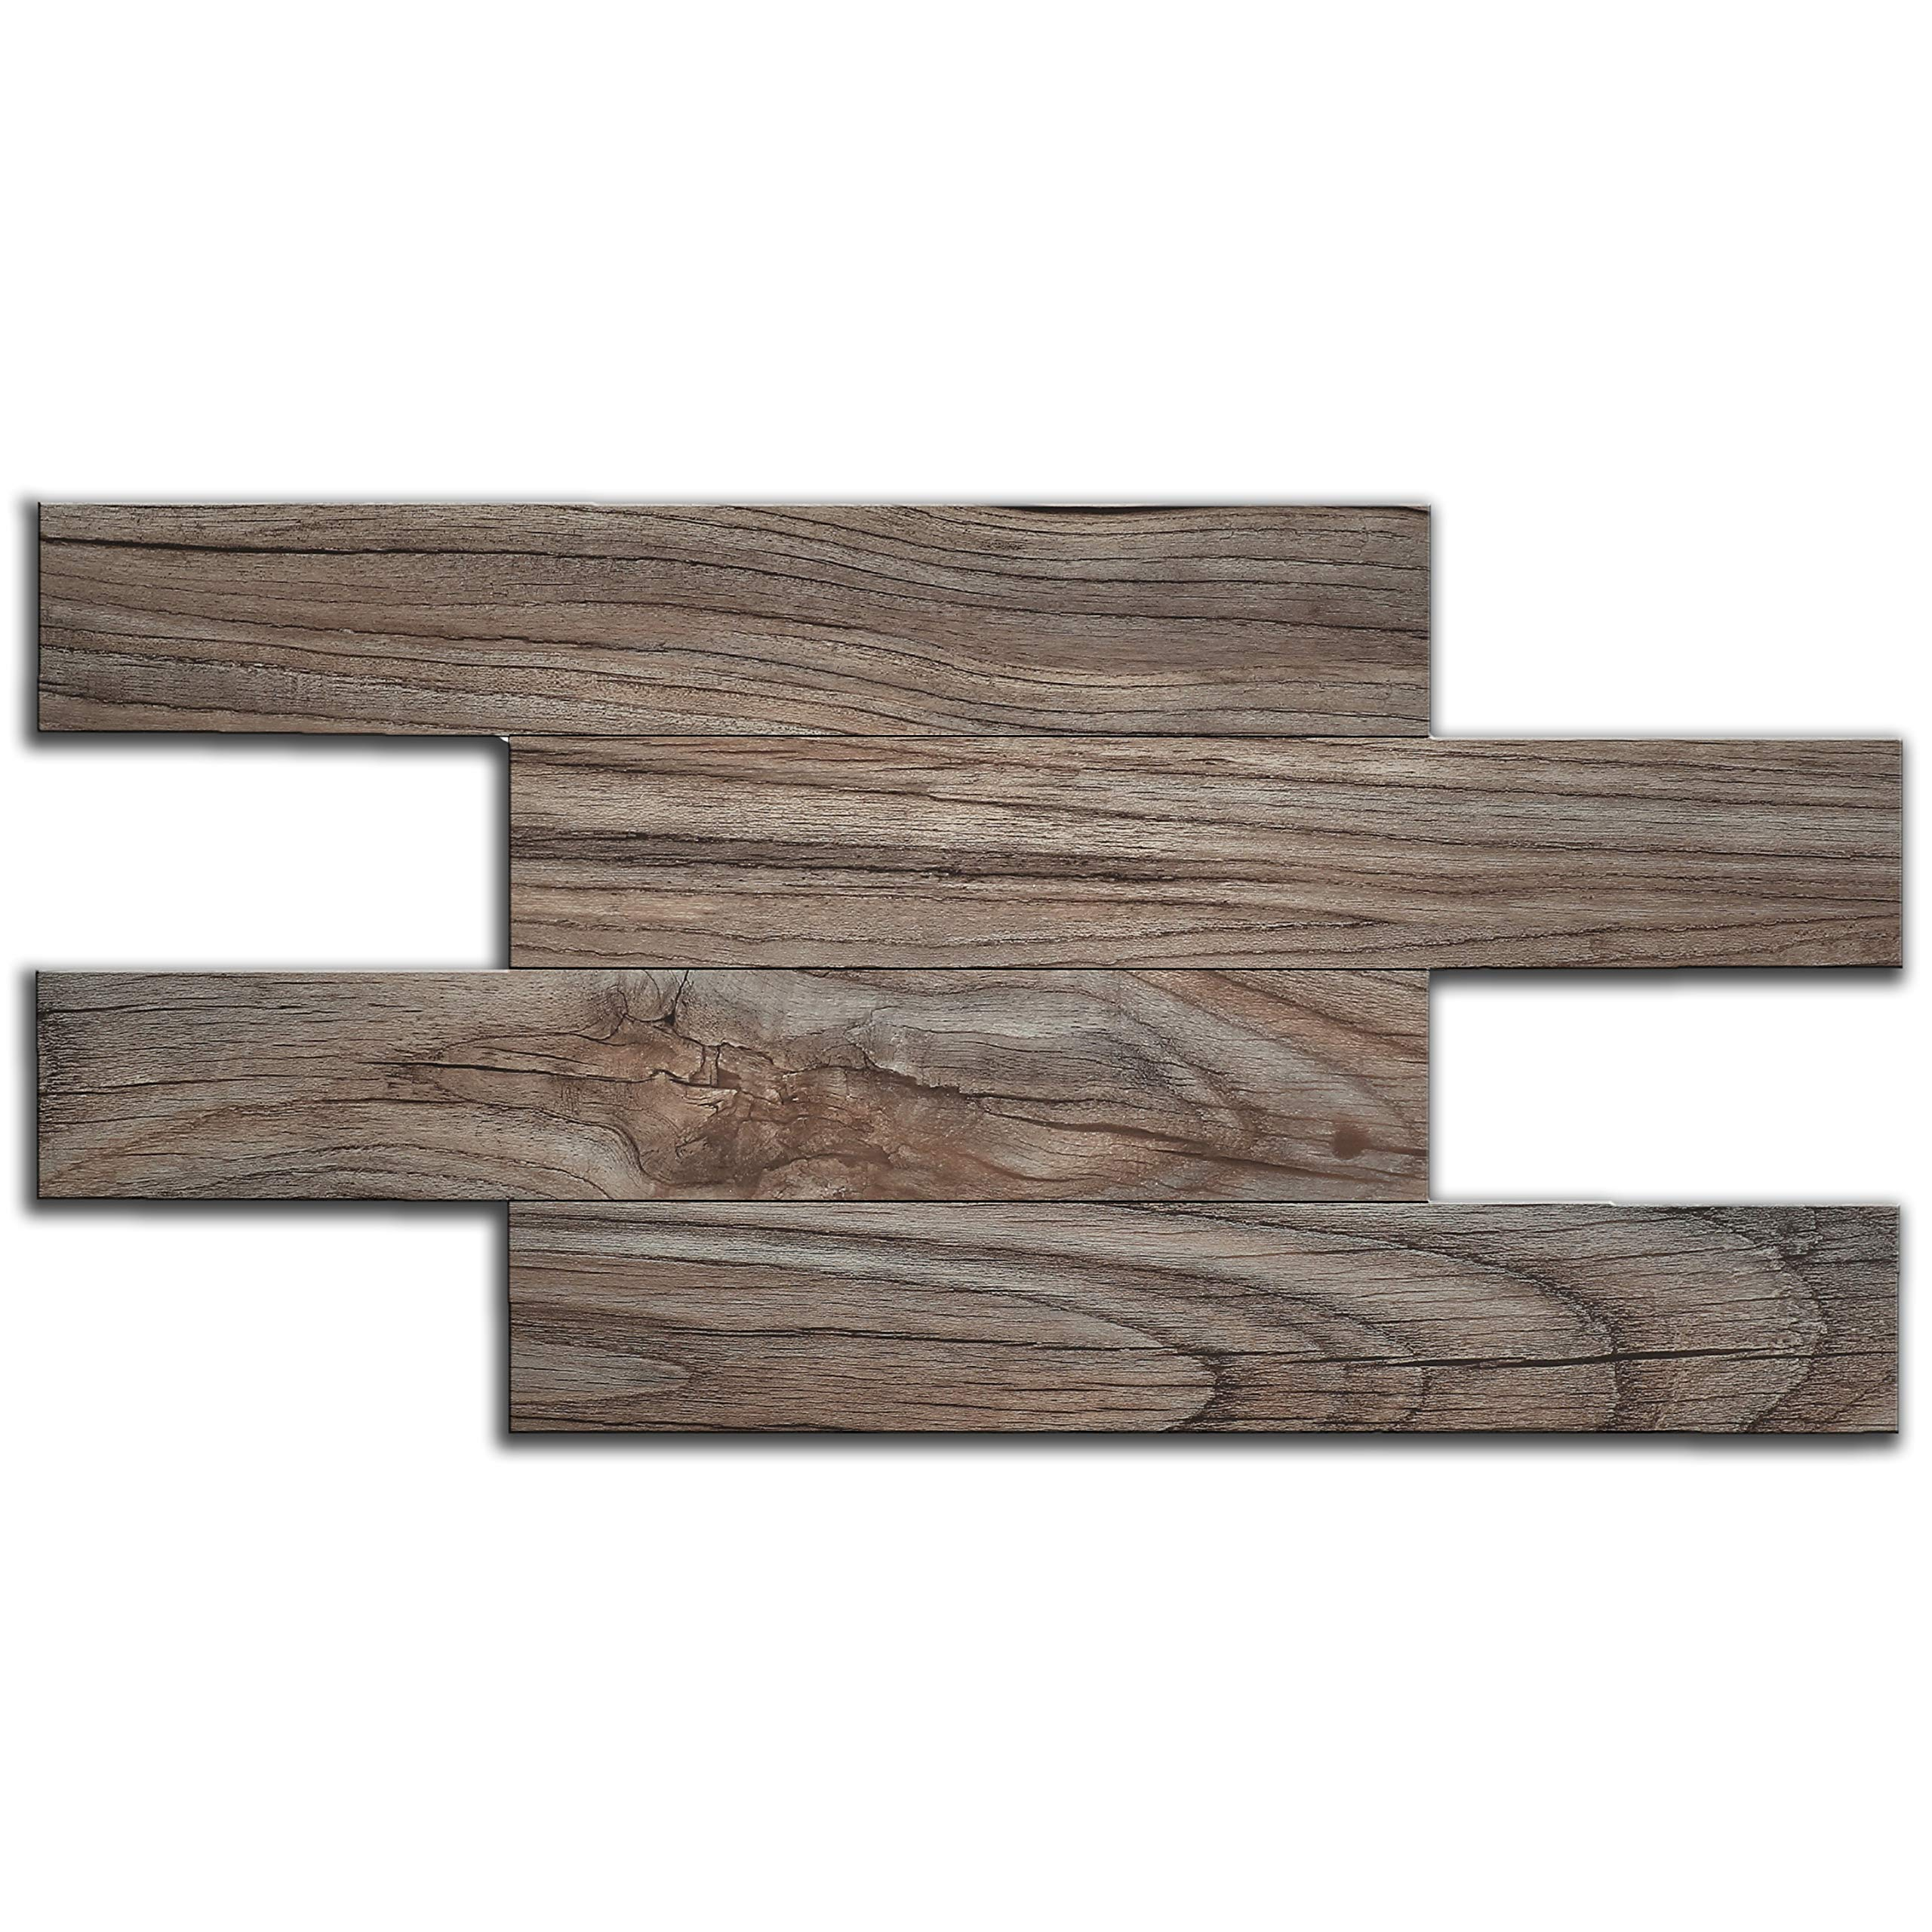 artesanía muro Peel and Stick Wall Tiles, Kitchen Bathroom Backsplash Tile, Wood Grain, Adhesive, Fire Proof, Water Proof, Anti-Moldy, 13.4 inch x 6.7 inch per Tile, Pack of 6 Tiles